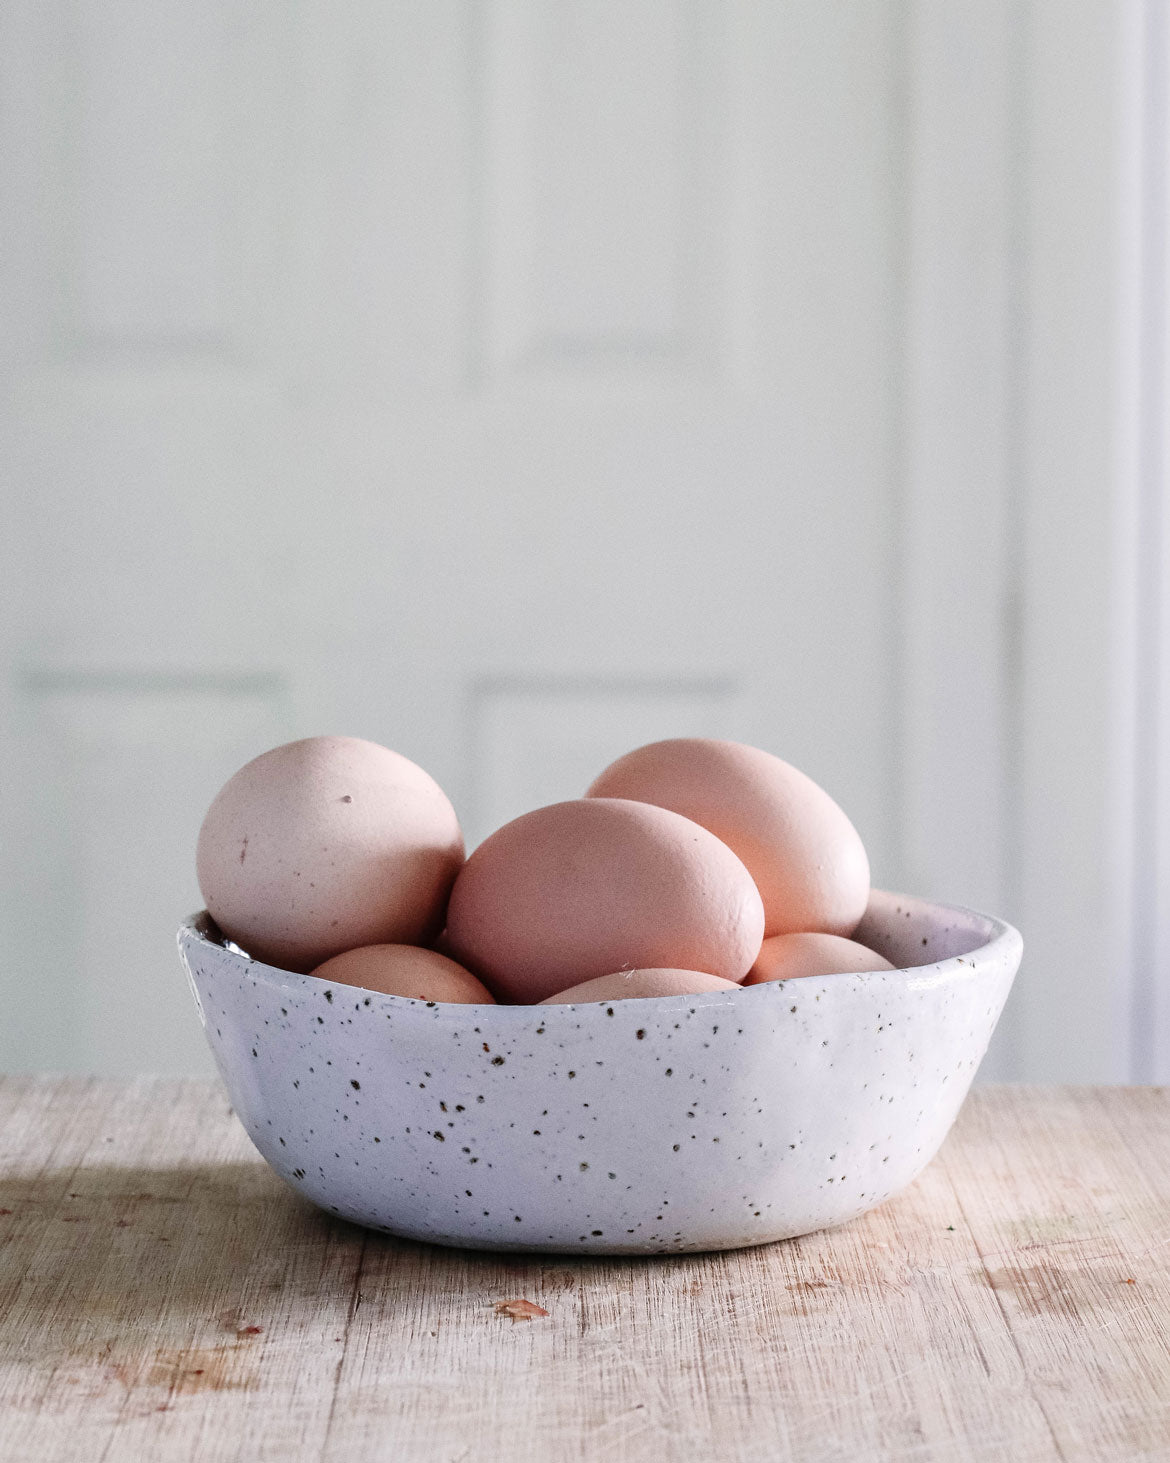 Fresh eggs in a handmade pottery bowl